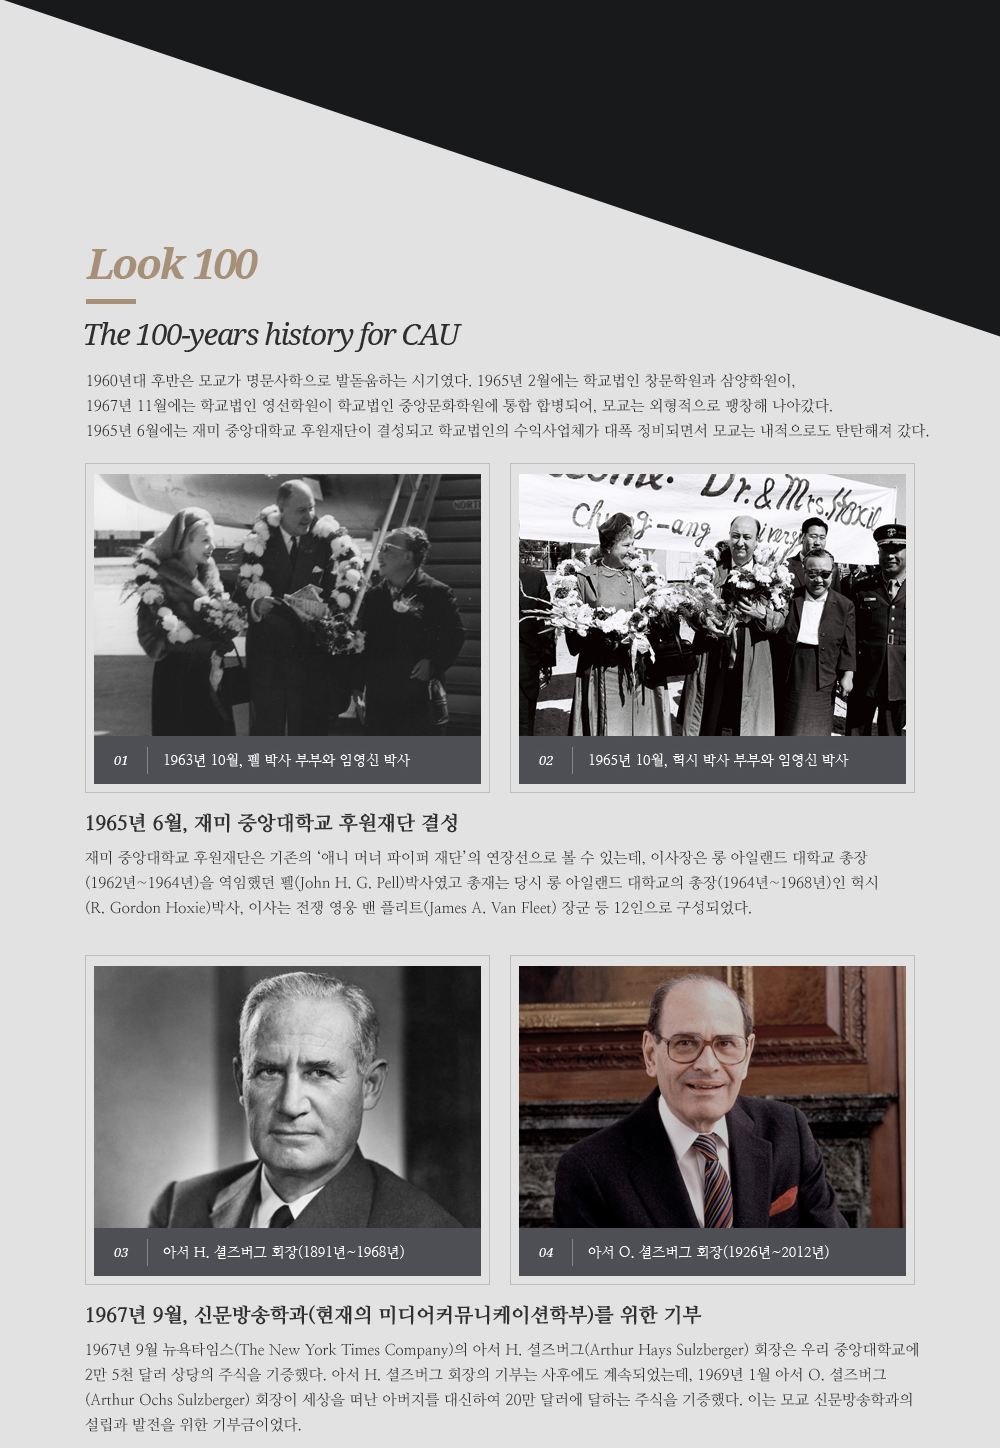 The 100-years history for CAU